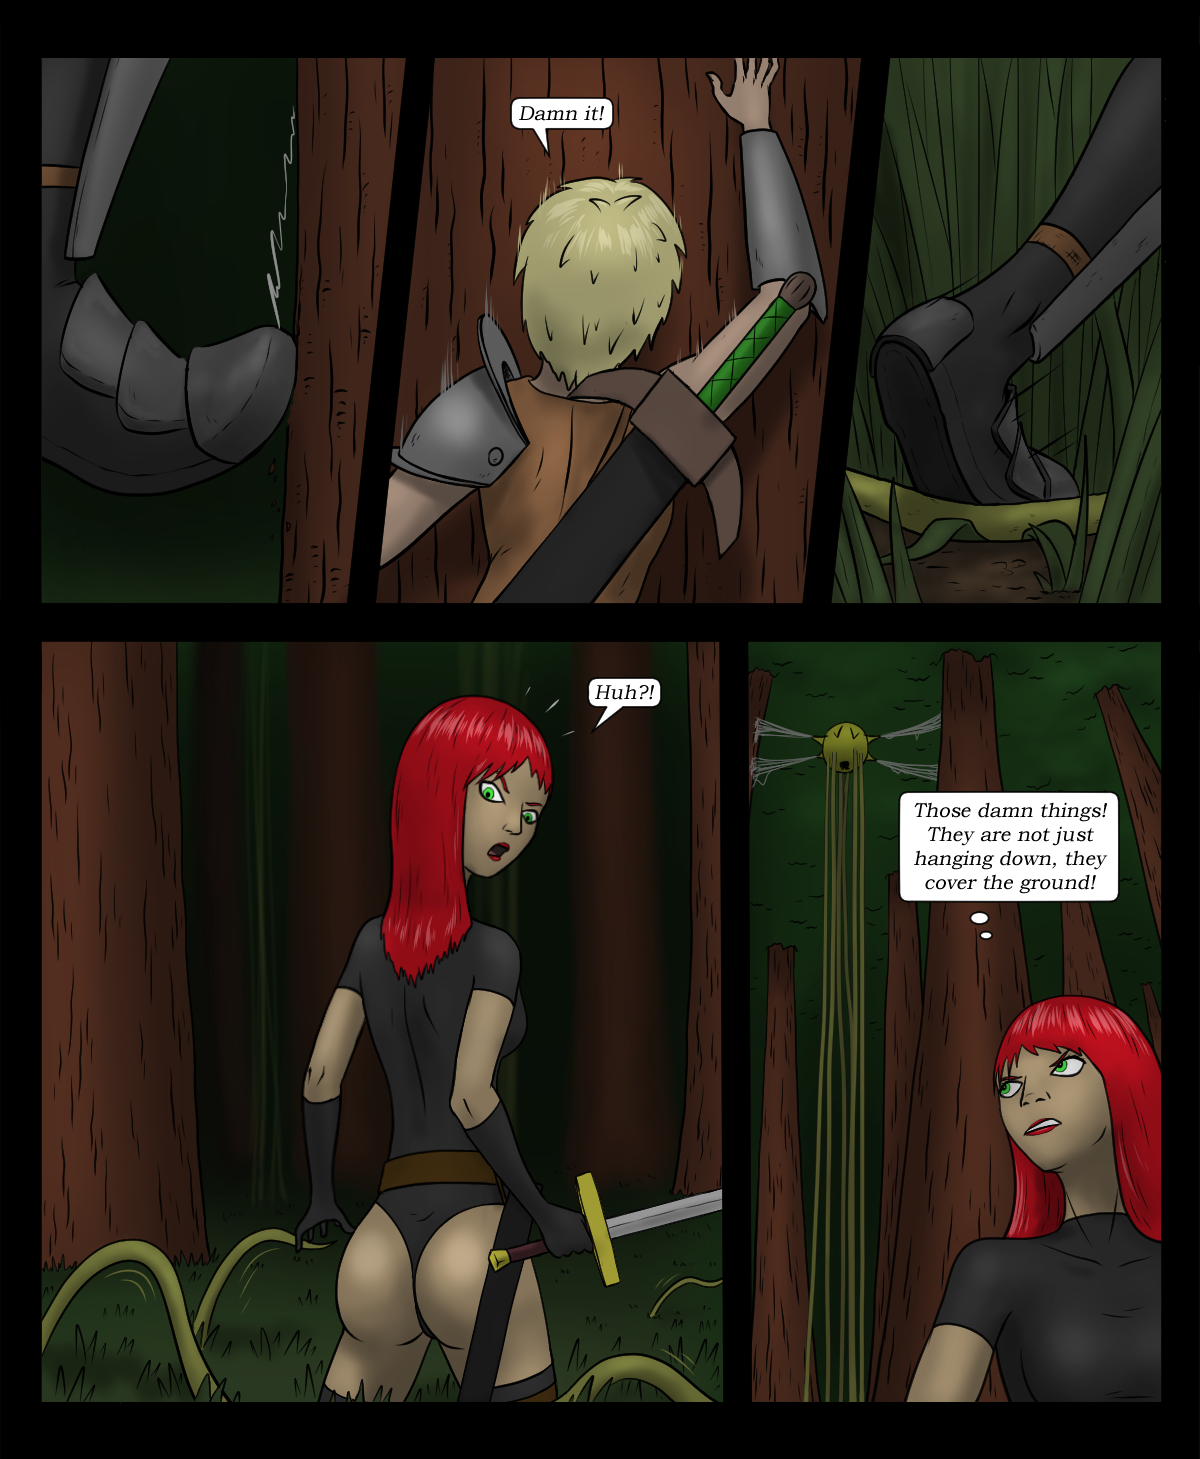 Page 75 - The unseen danger